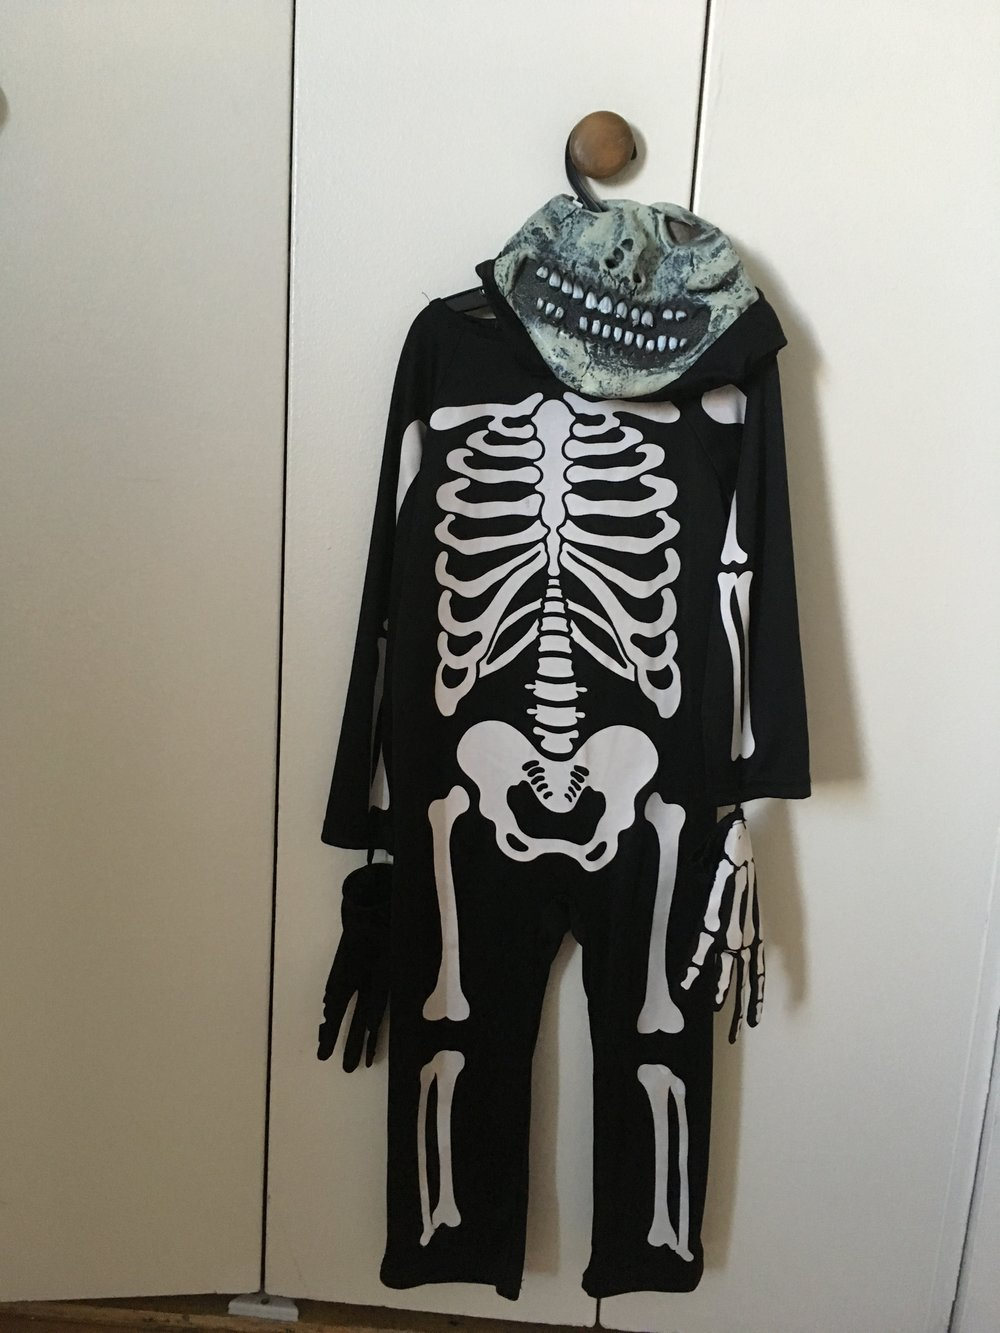 Skeleton Costume 7 yo $10